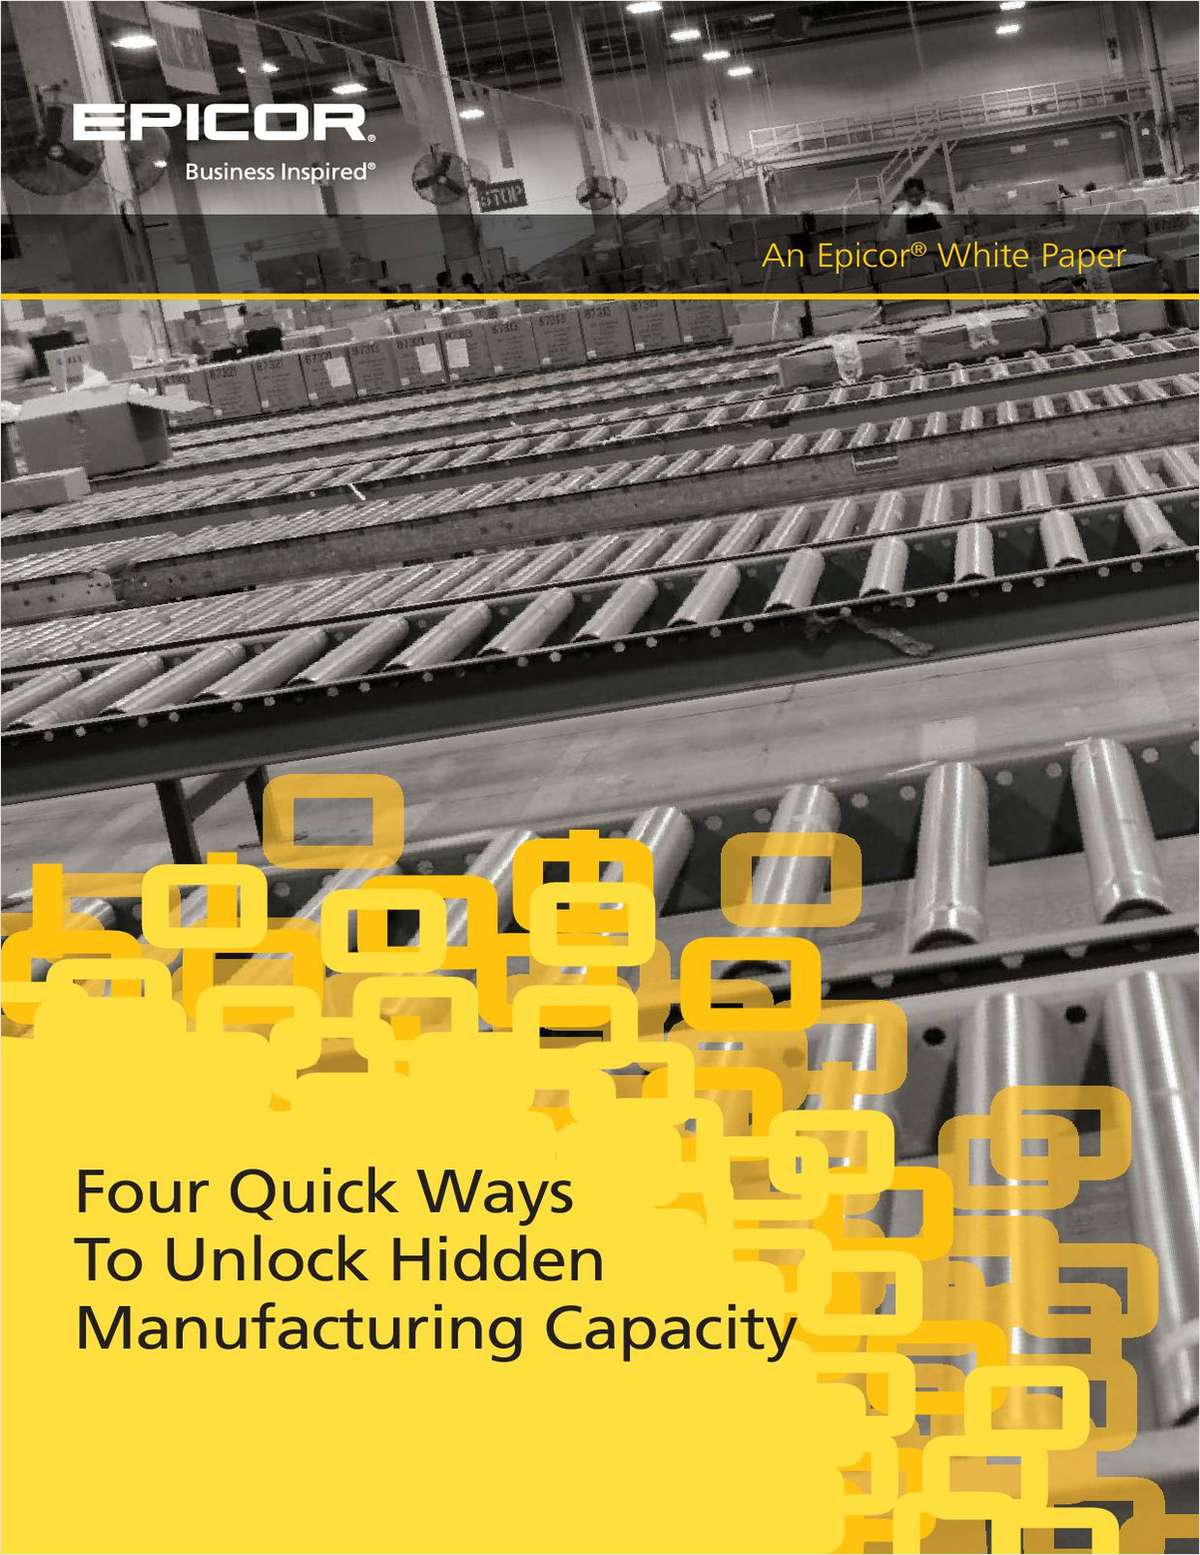 4 Quick Ways to Unlock Hidden Manufacturing Capacity